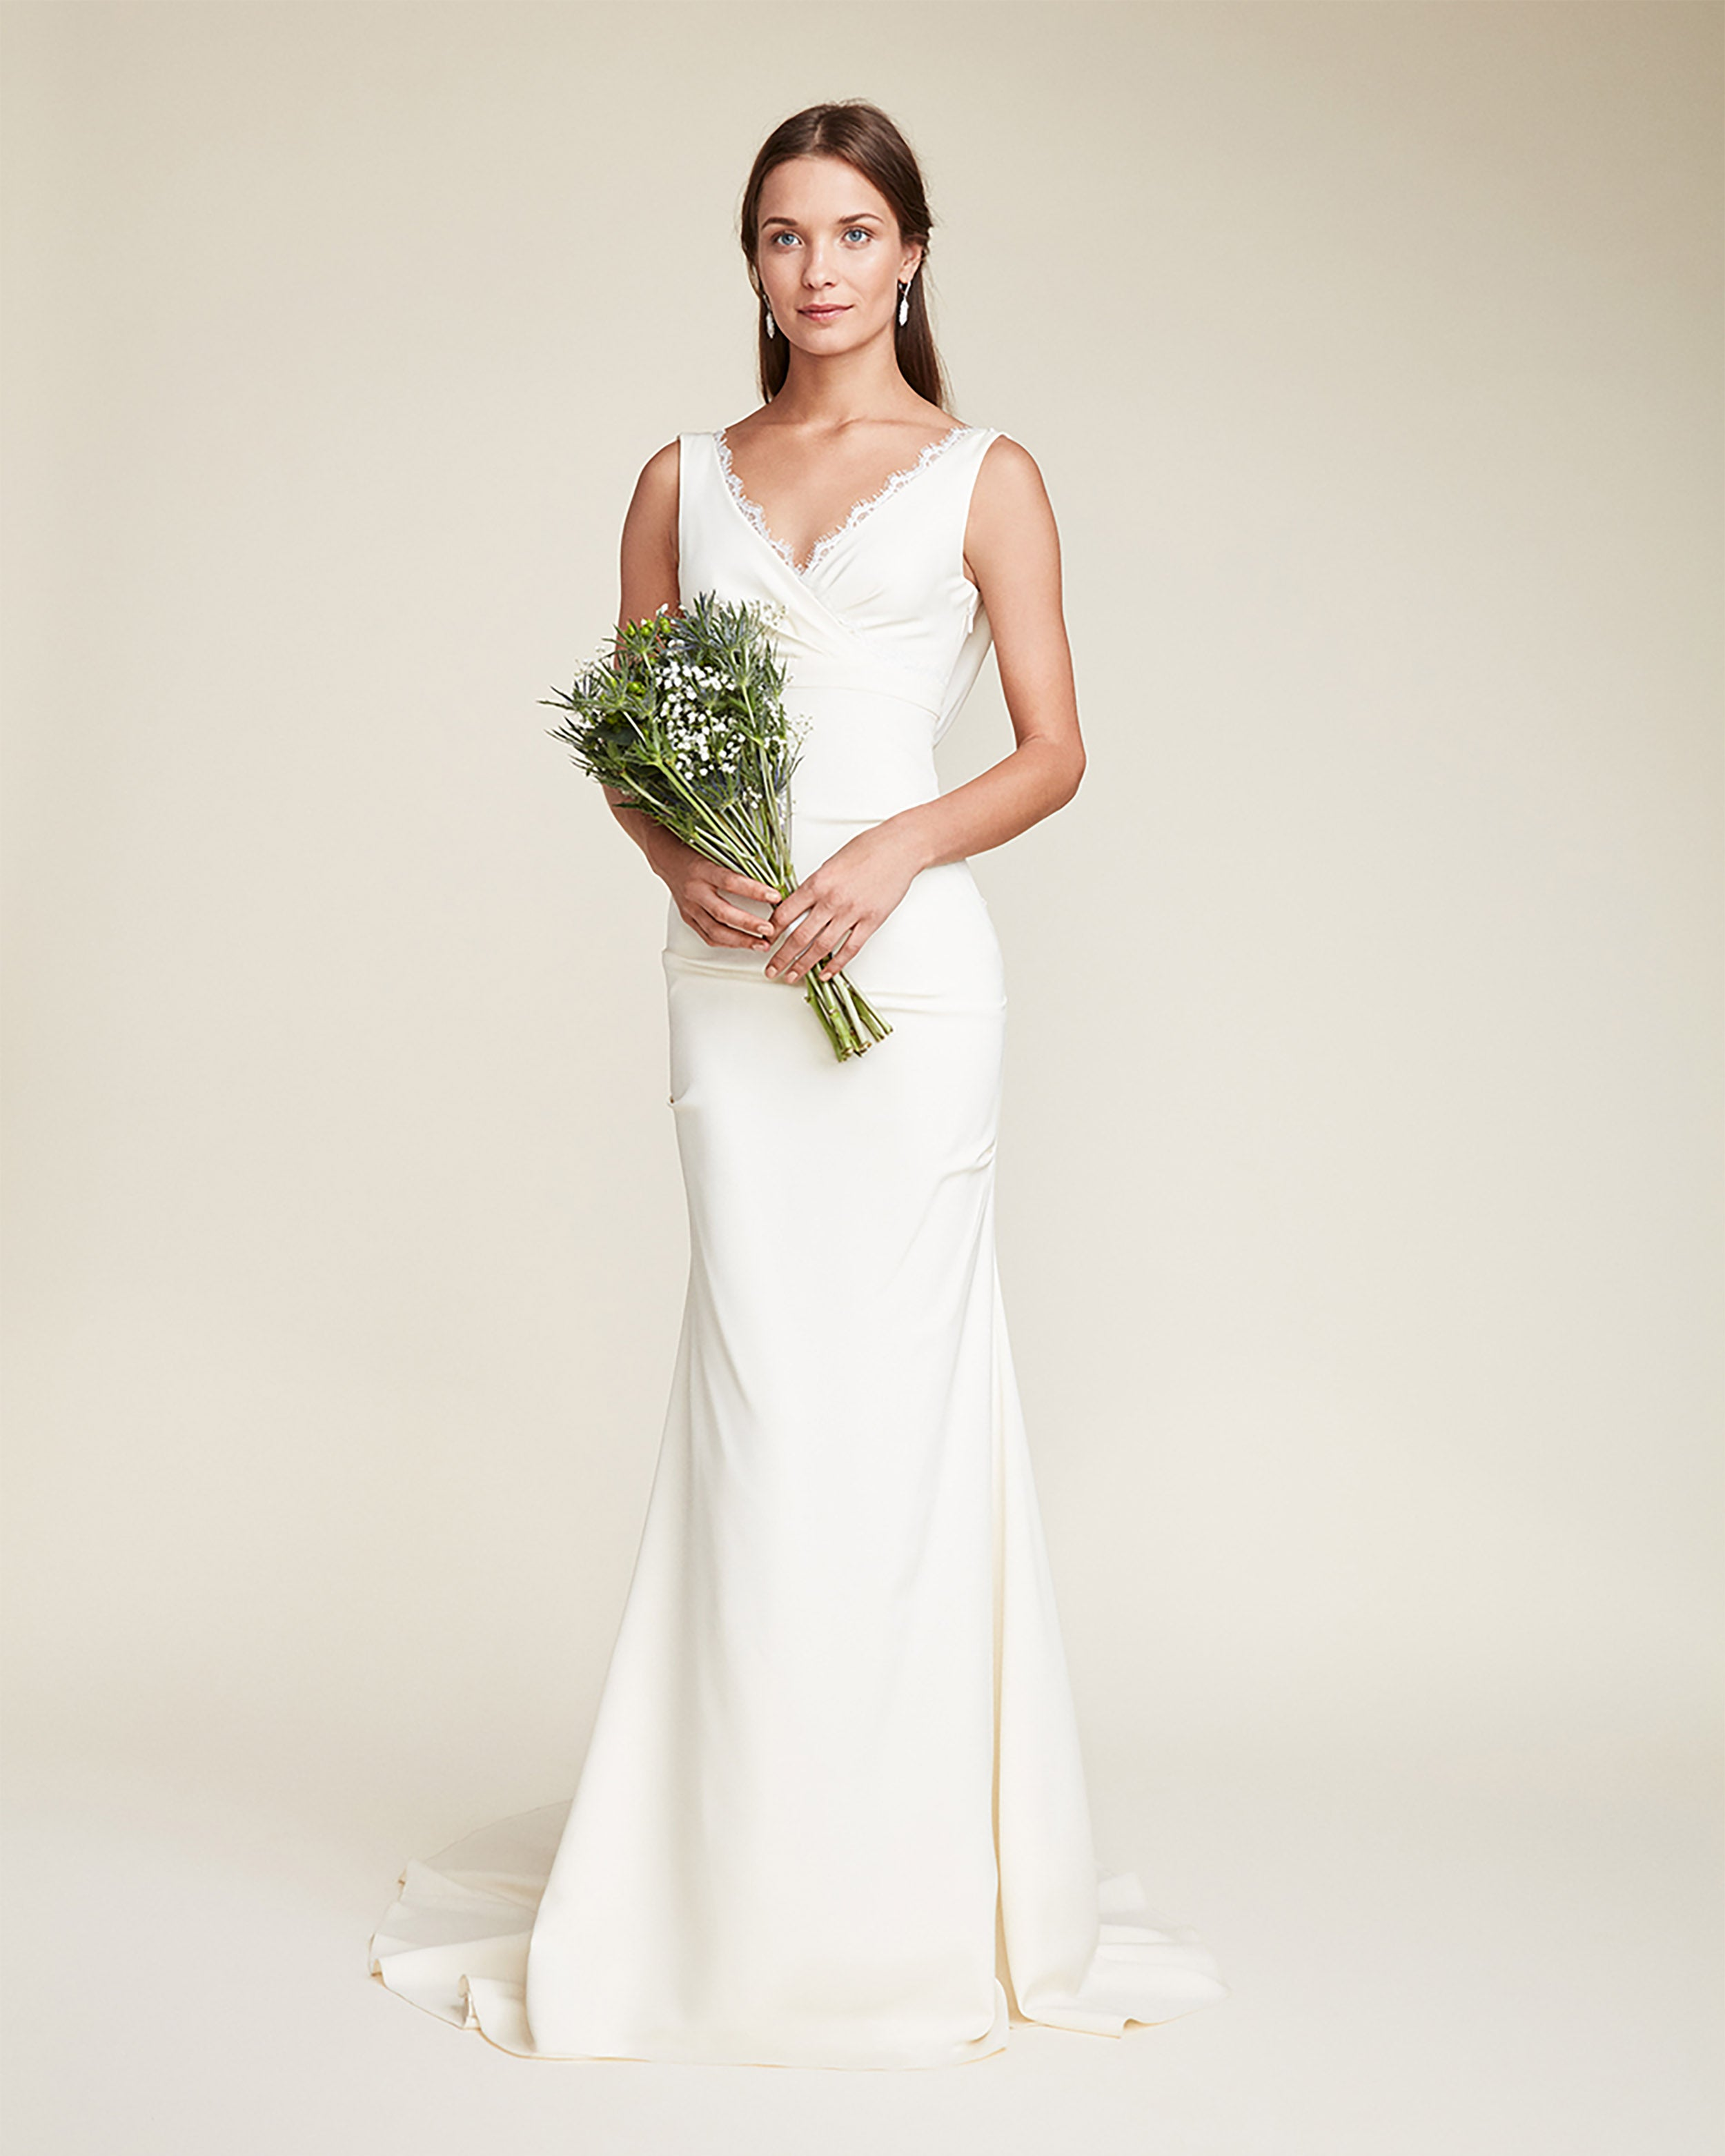 nicole miller nina gown(final sale) in ivory   silk/spandex   size 0